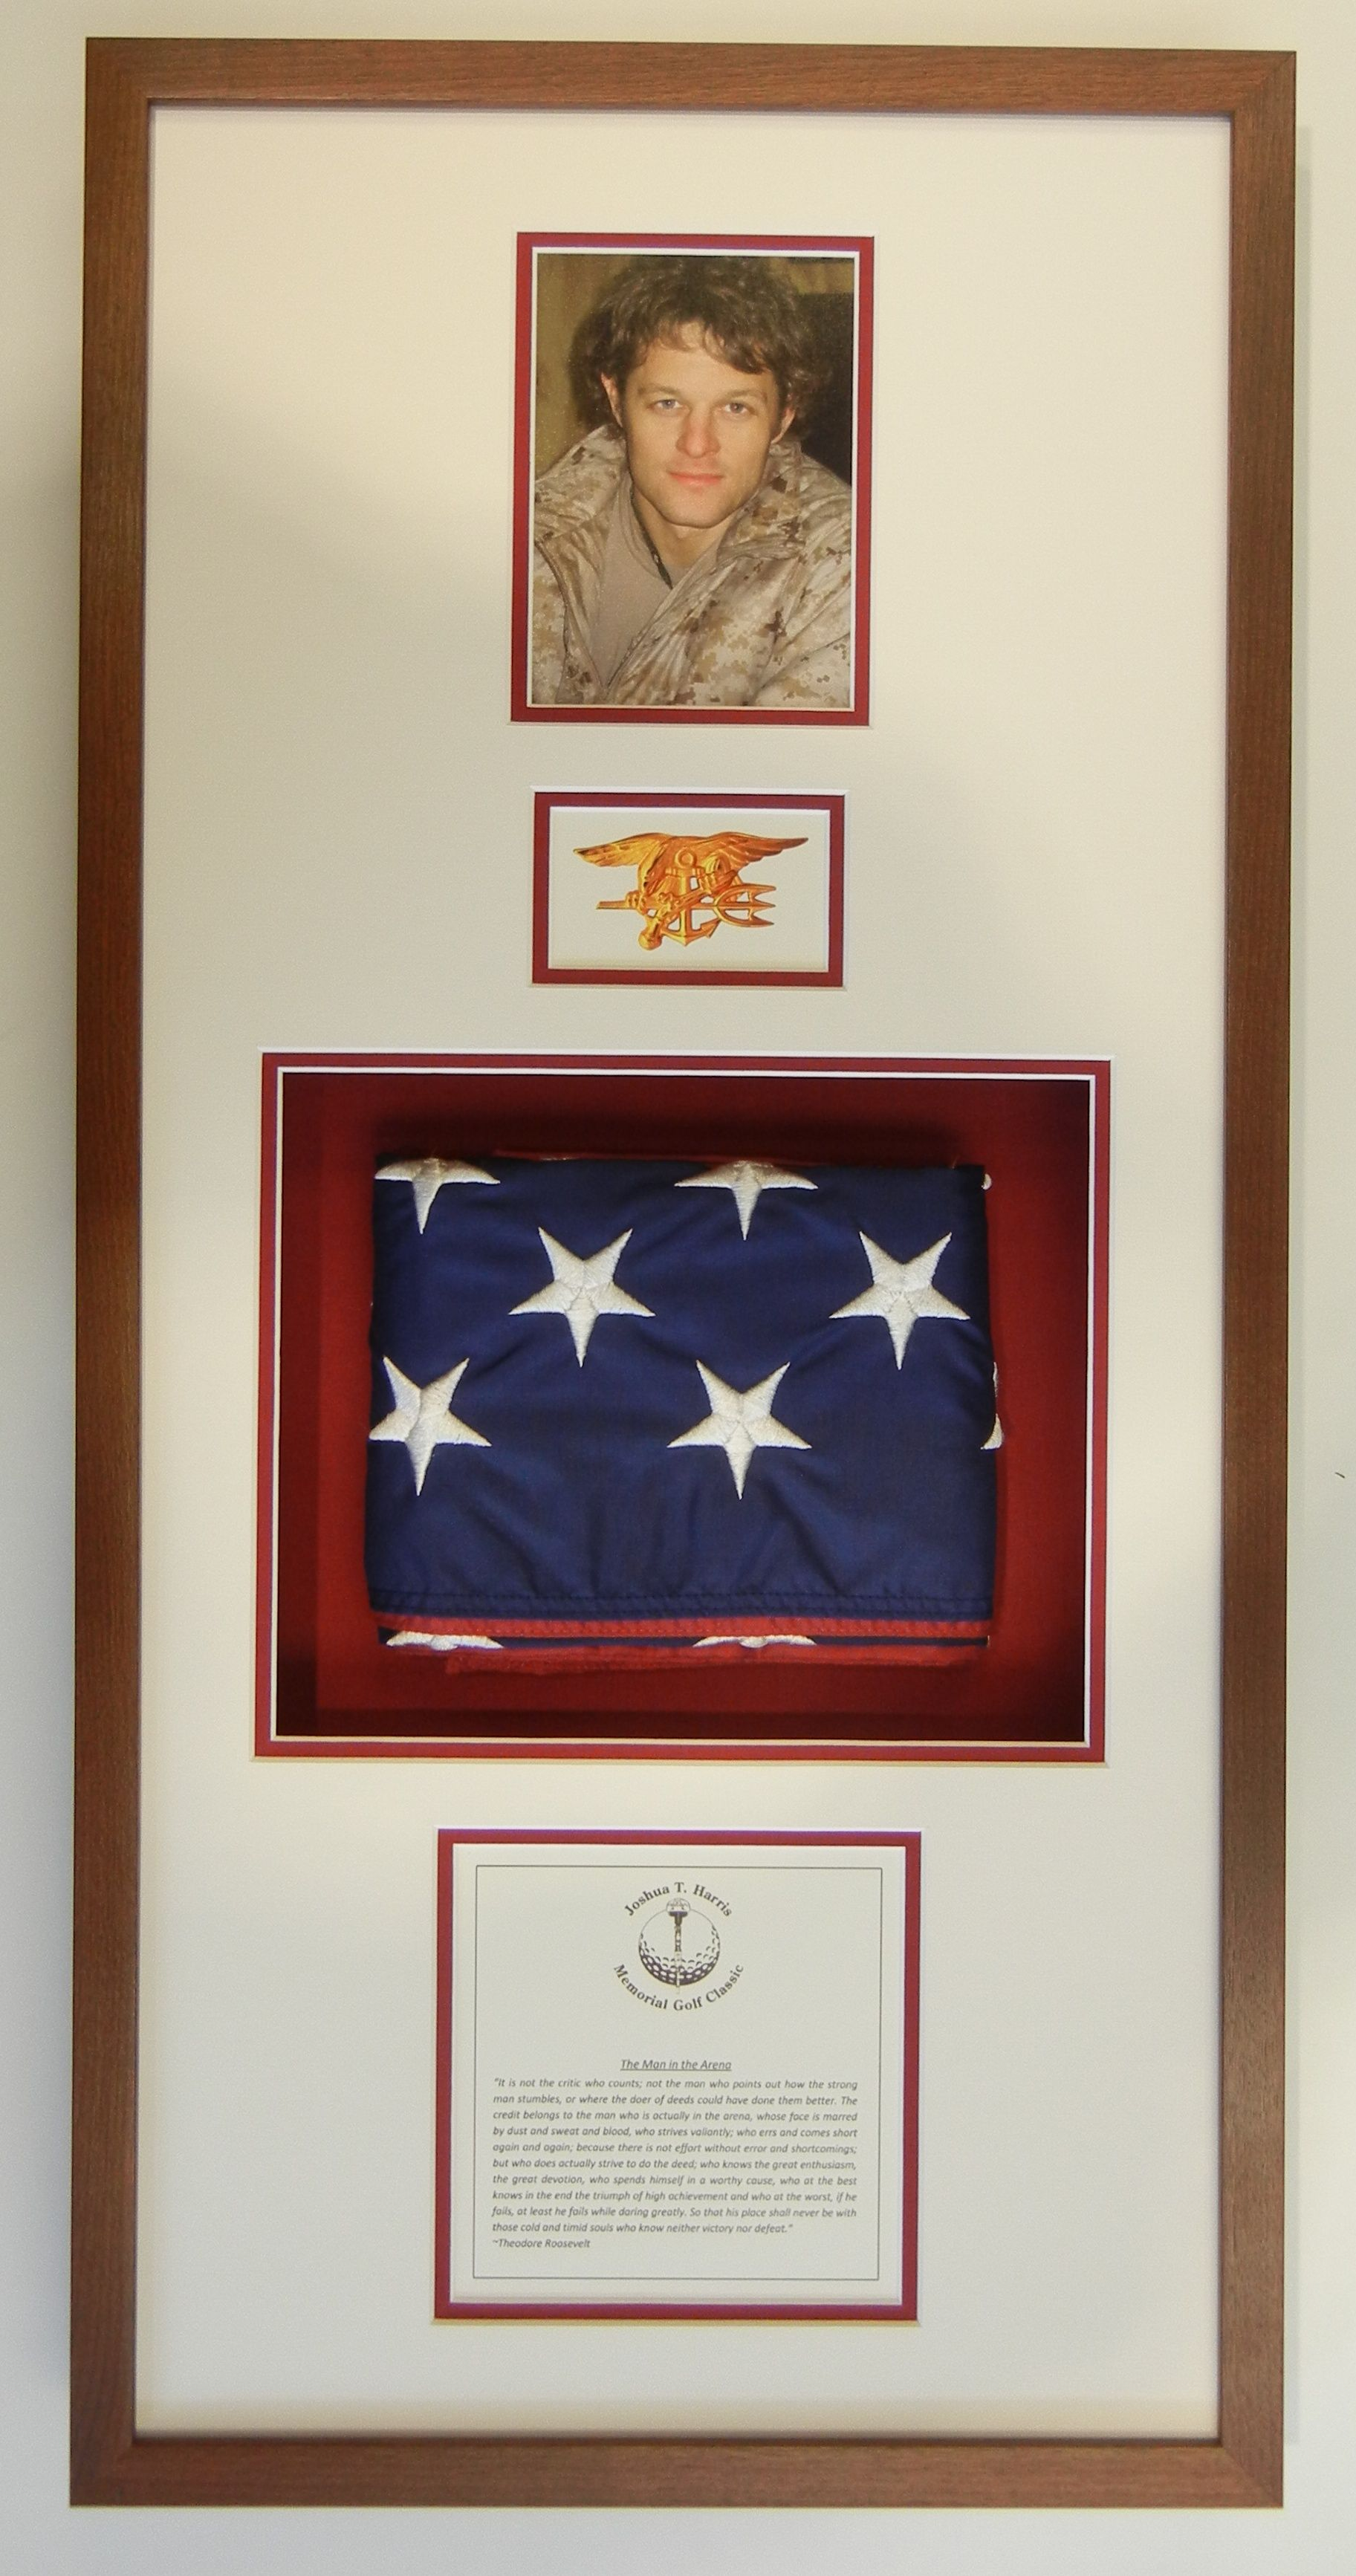 Framing Design To Honor A Fallen Hero